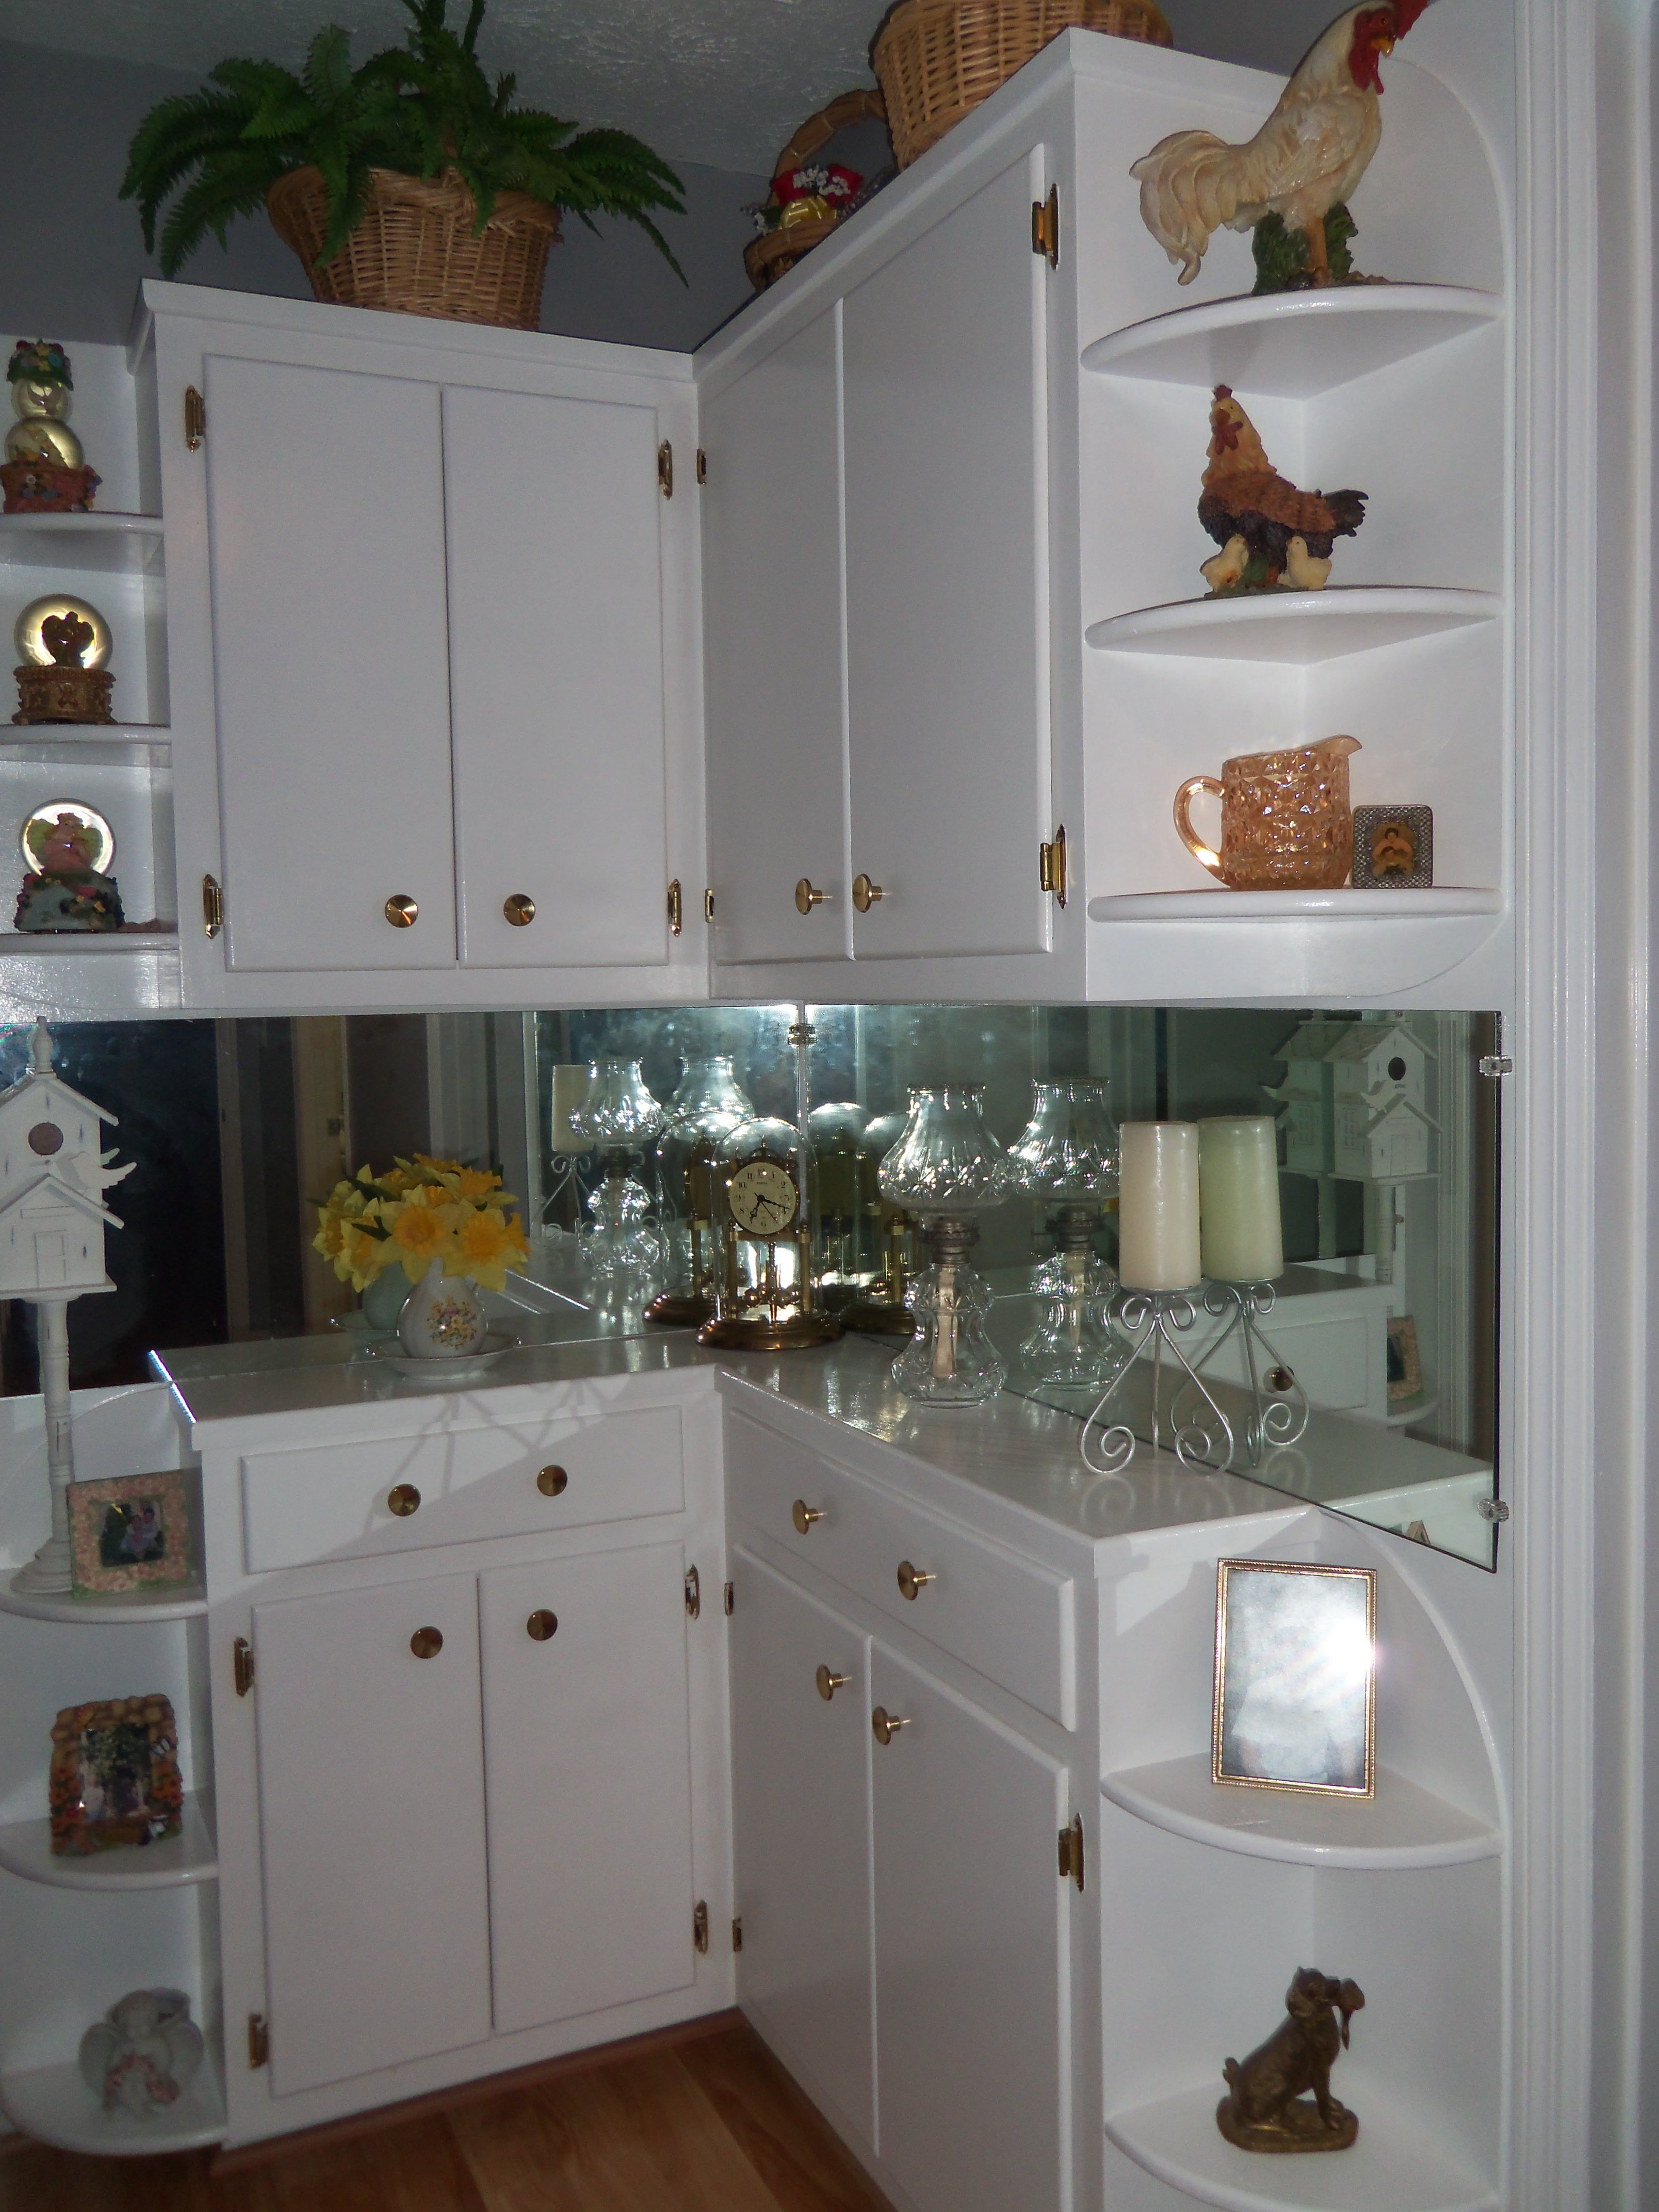 extra shelves at the end of the cabinets | Home decor ...